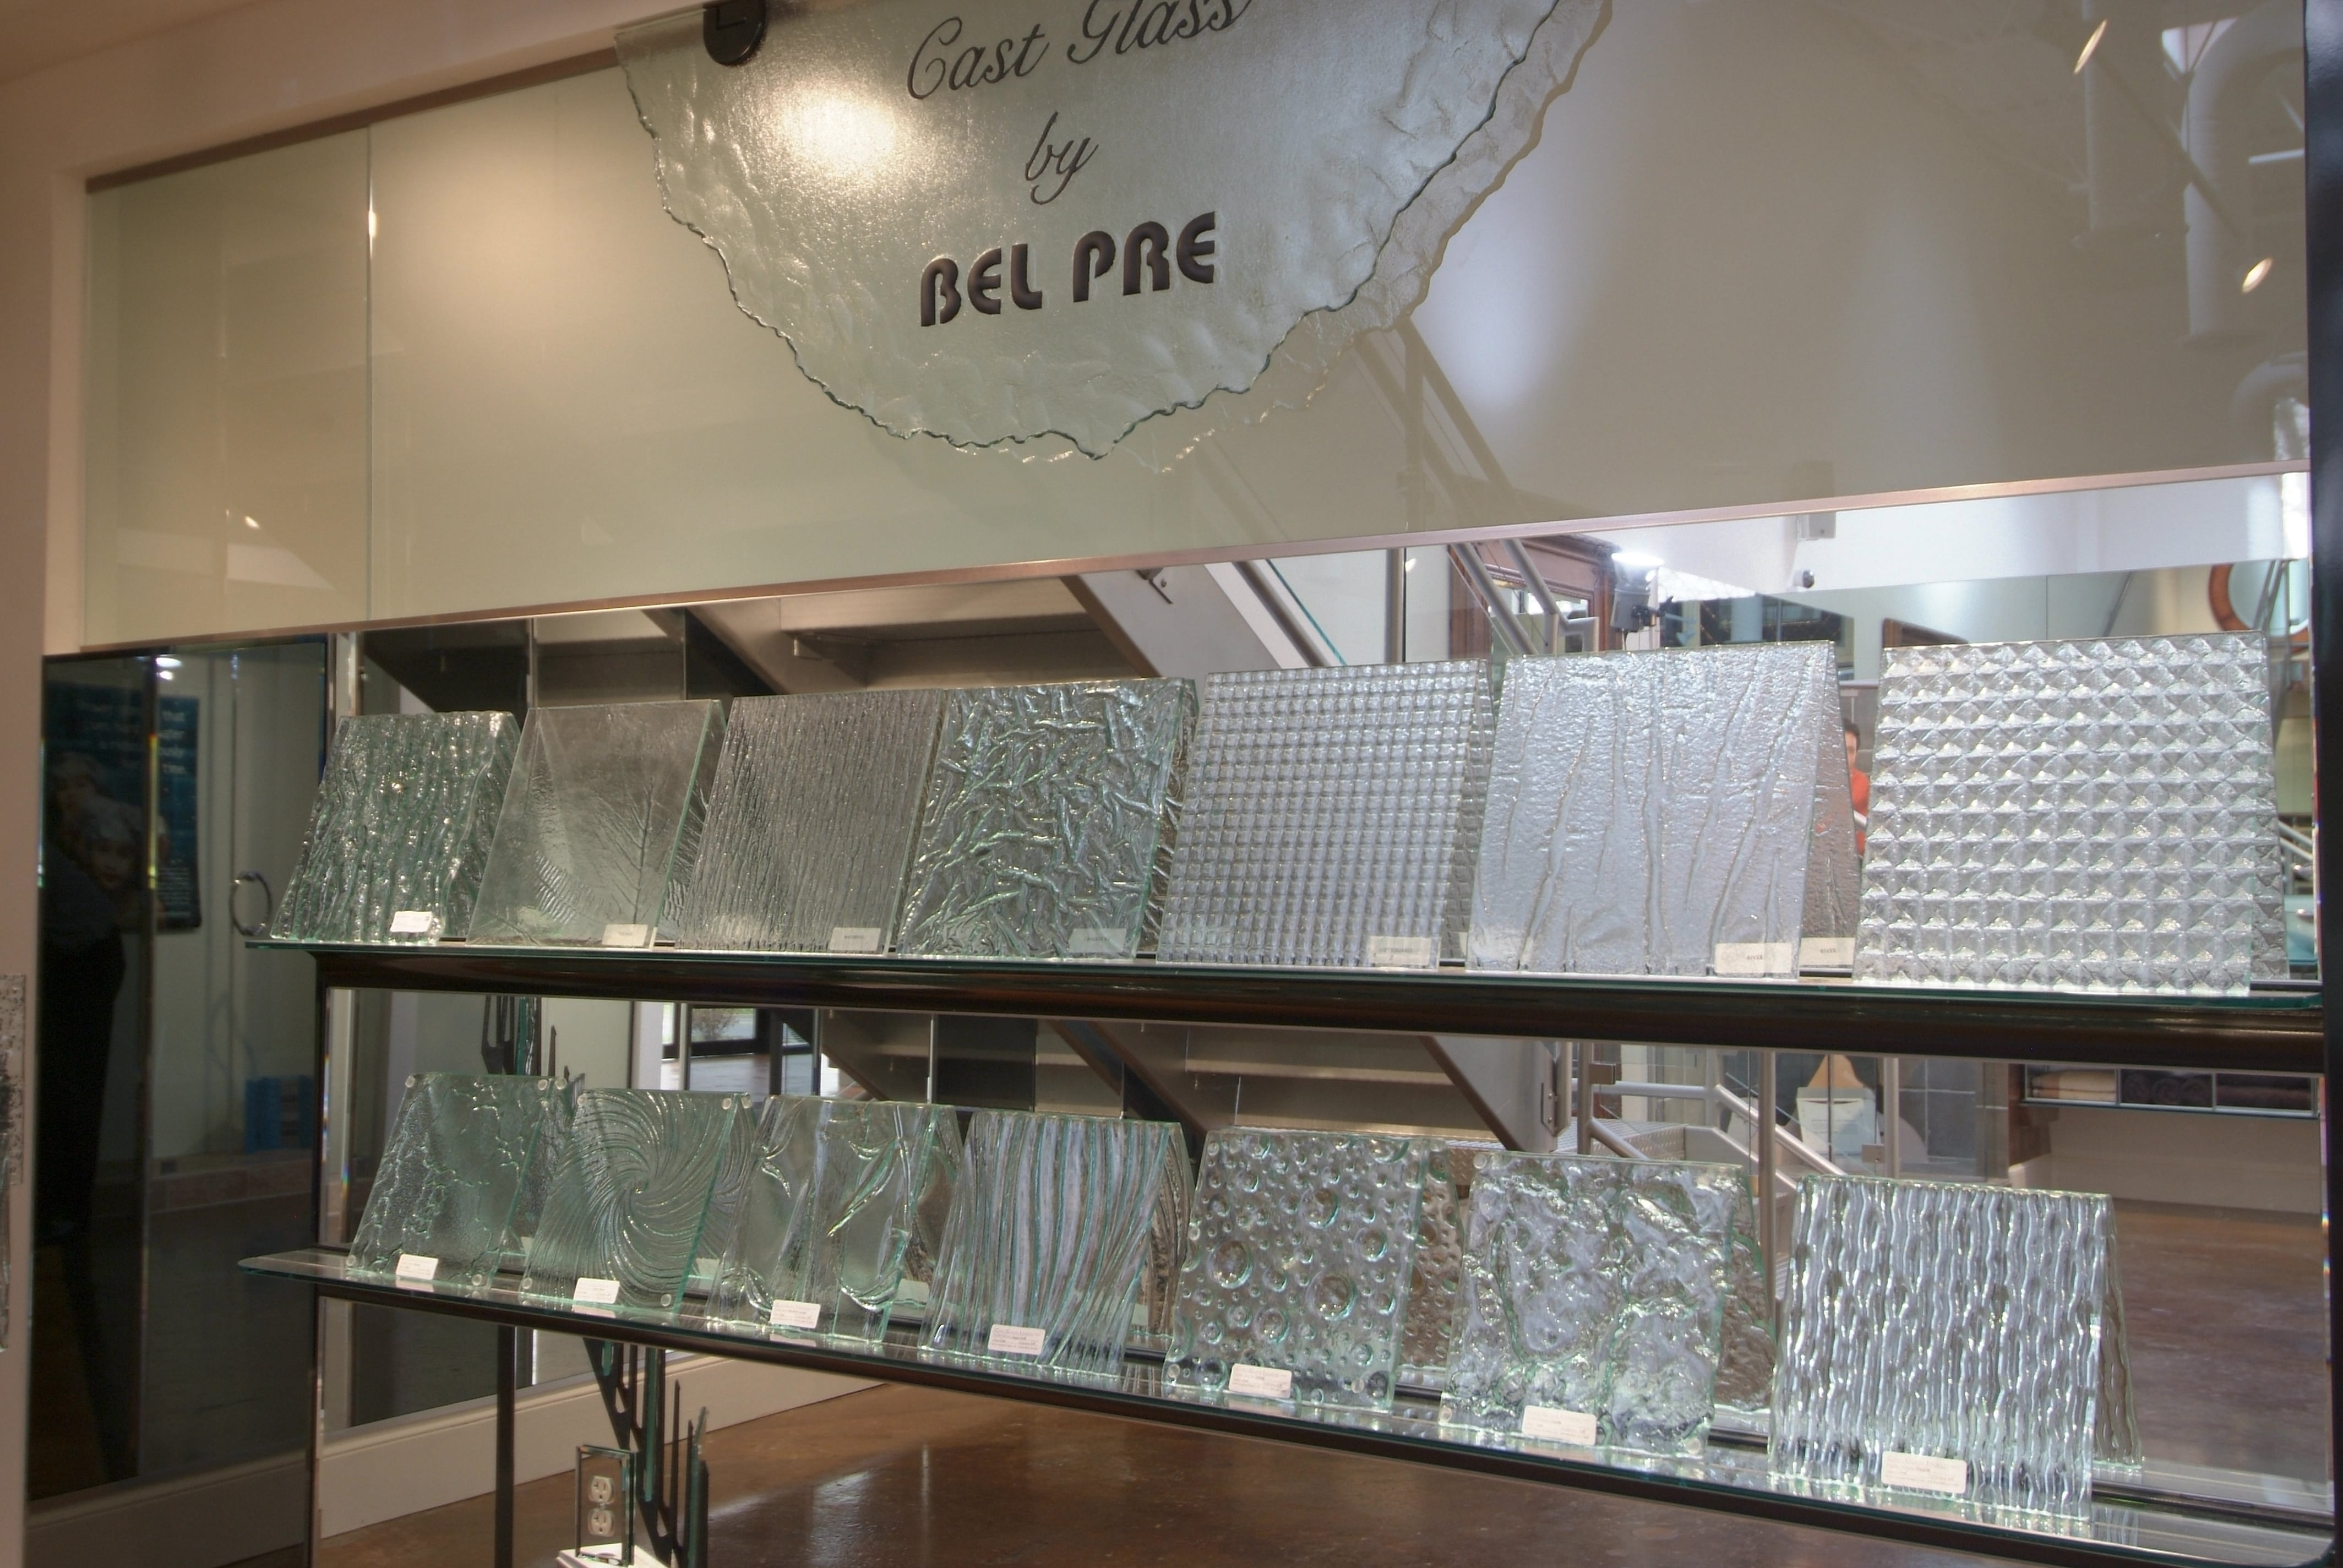 Showroom 23 - Cast Glass Display-min